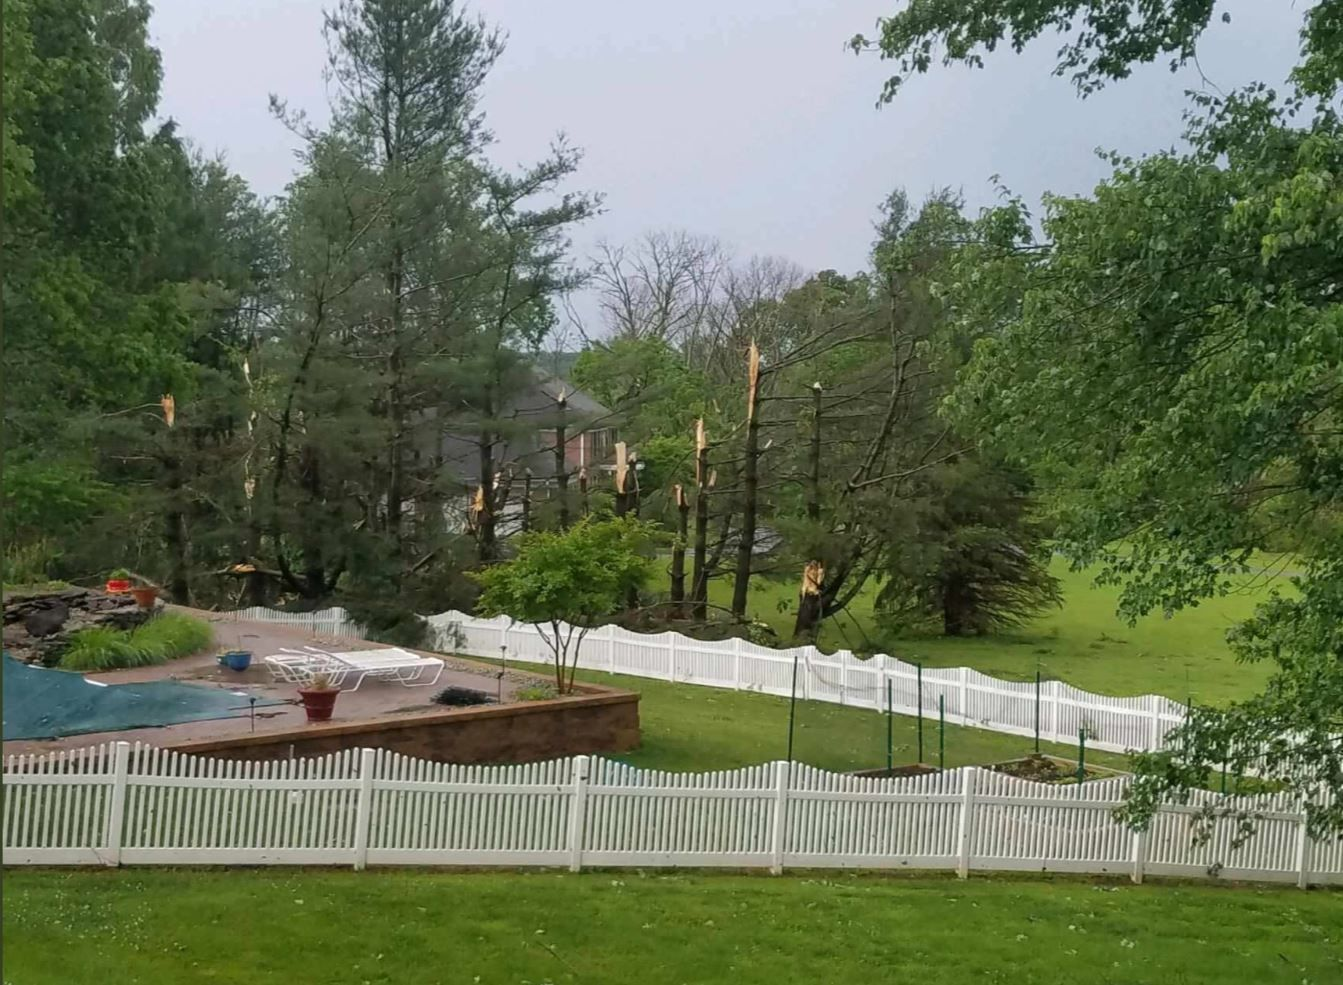 Storms in Howard County, Maryland, cause damage on Thursday, May 30, 2019. (Courtesy JBR  via Twitter)